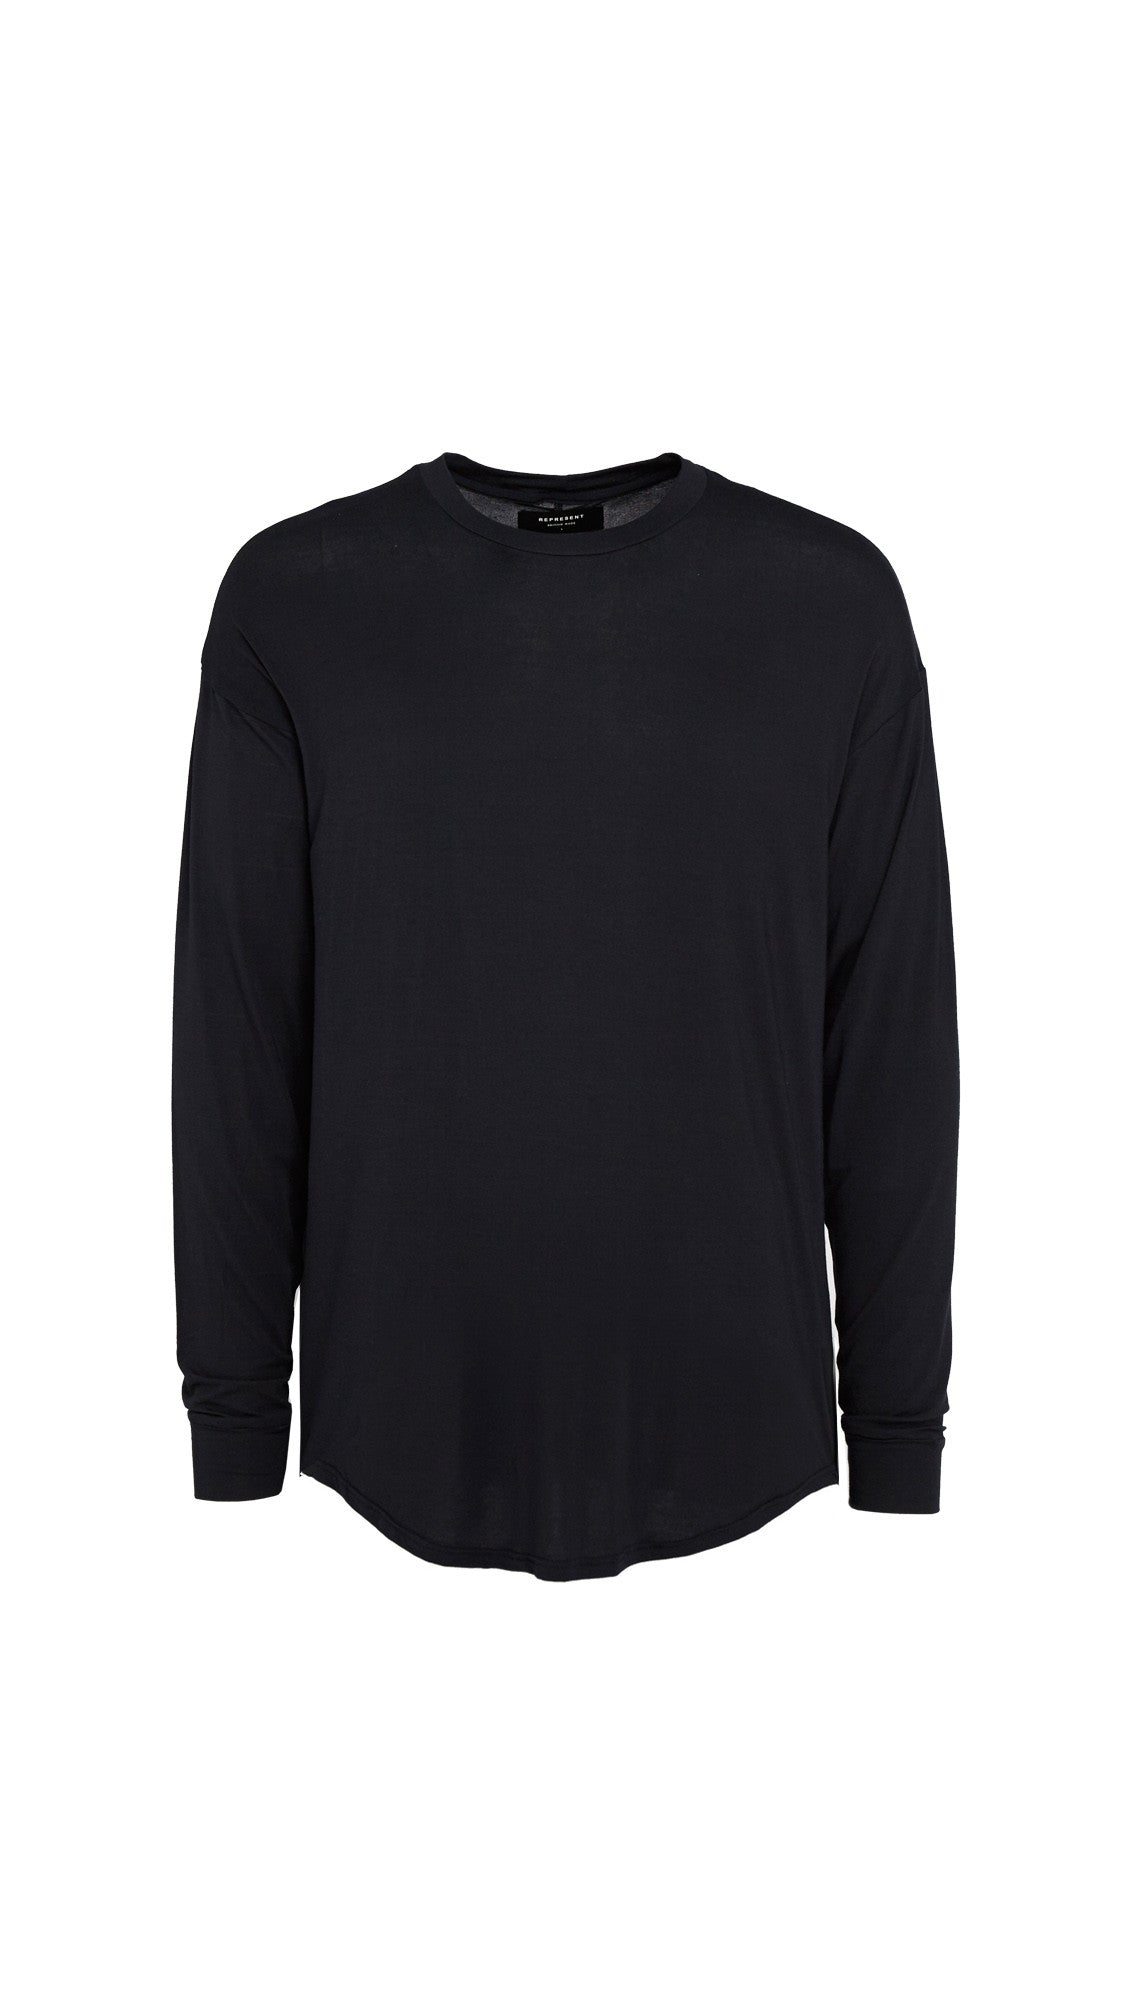 Long Sleeve Essential Scooped T-shirt - Black